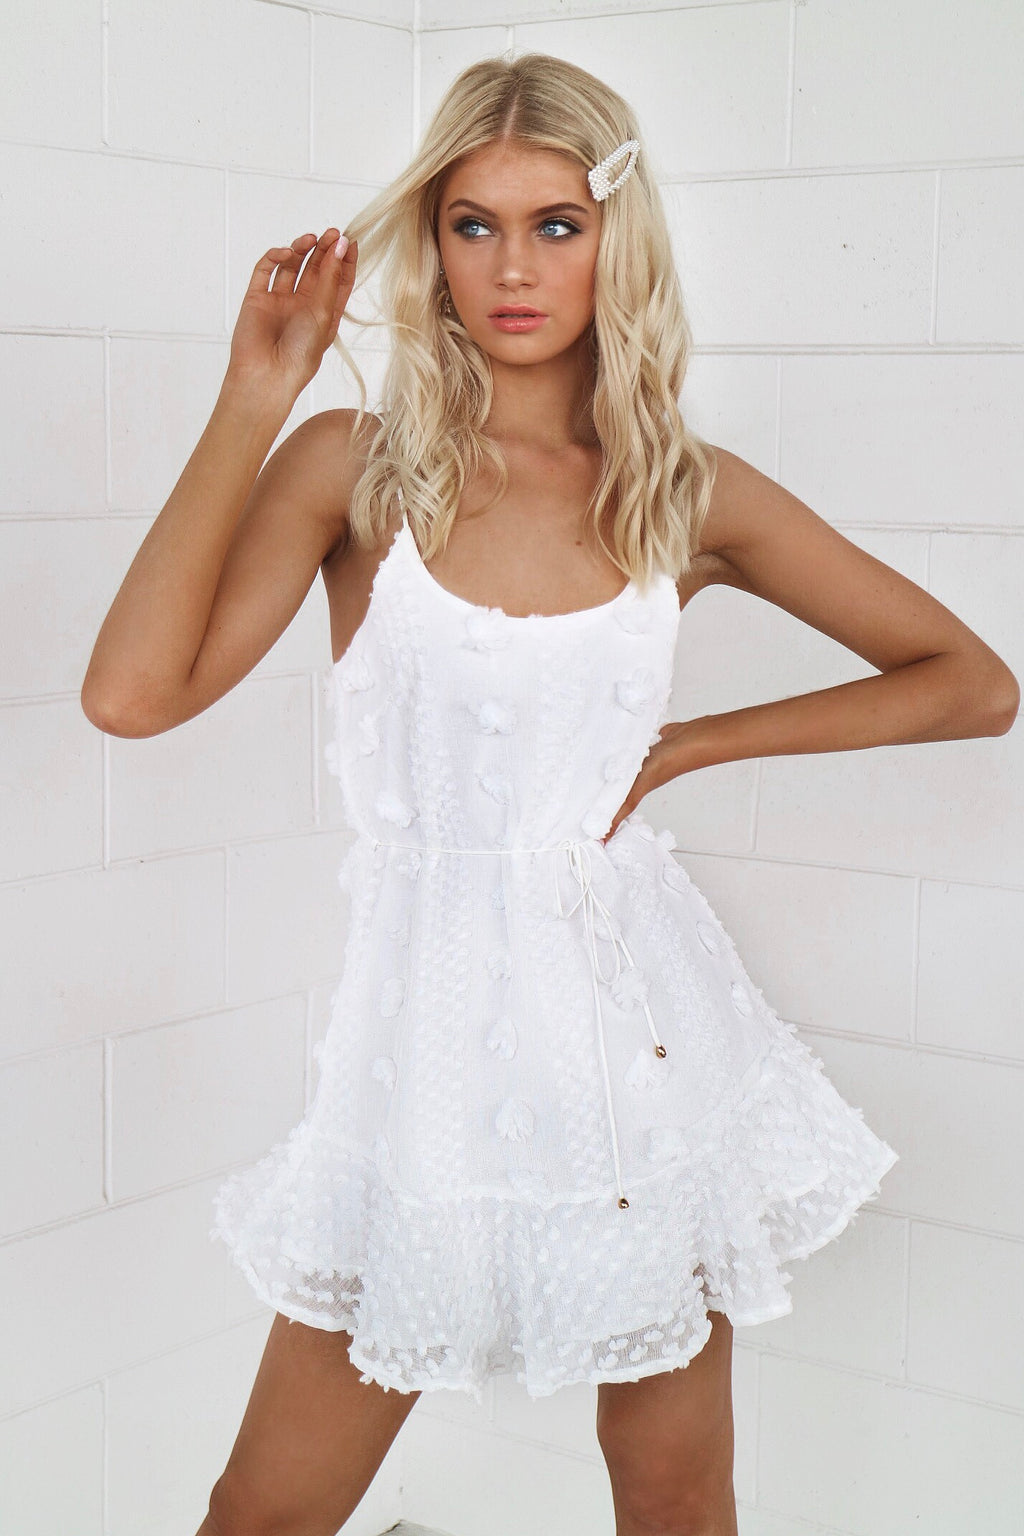 Byron Summer Dress - White - Runway Goddess